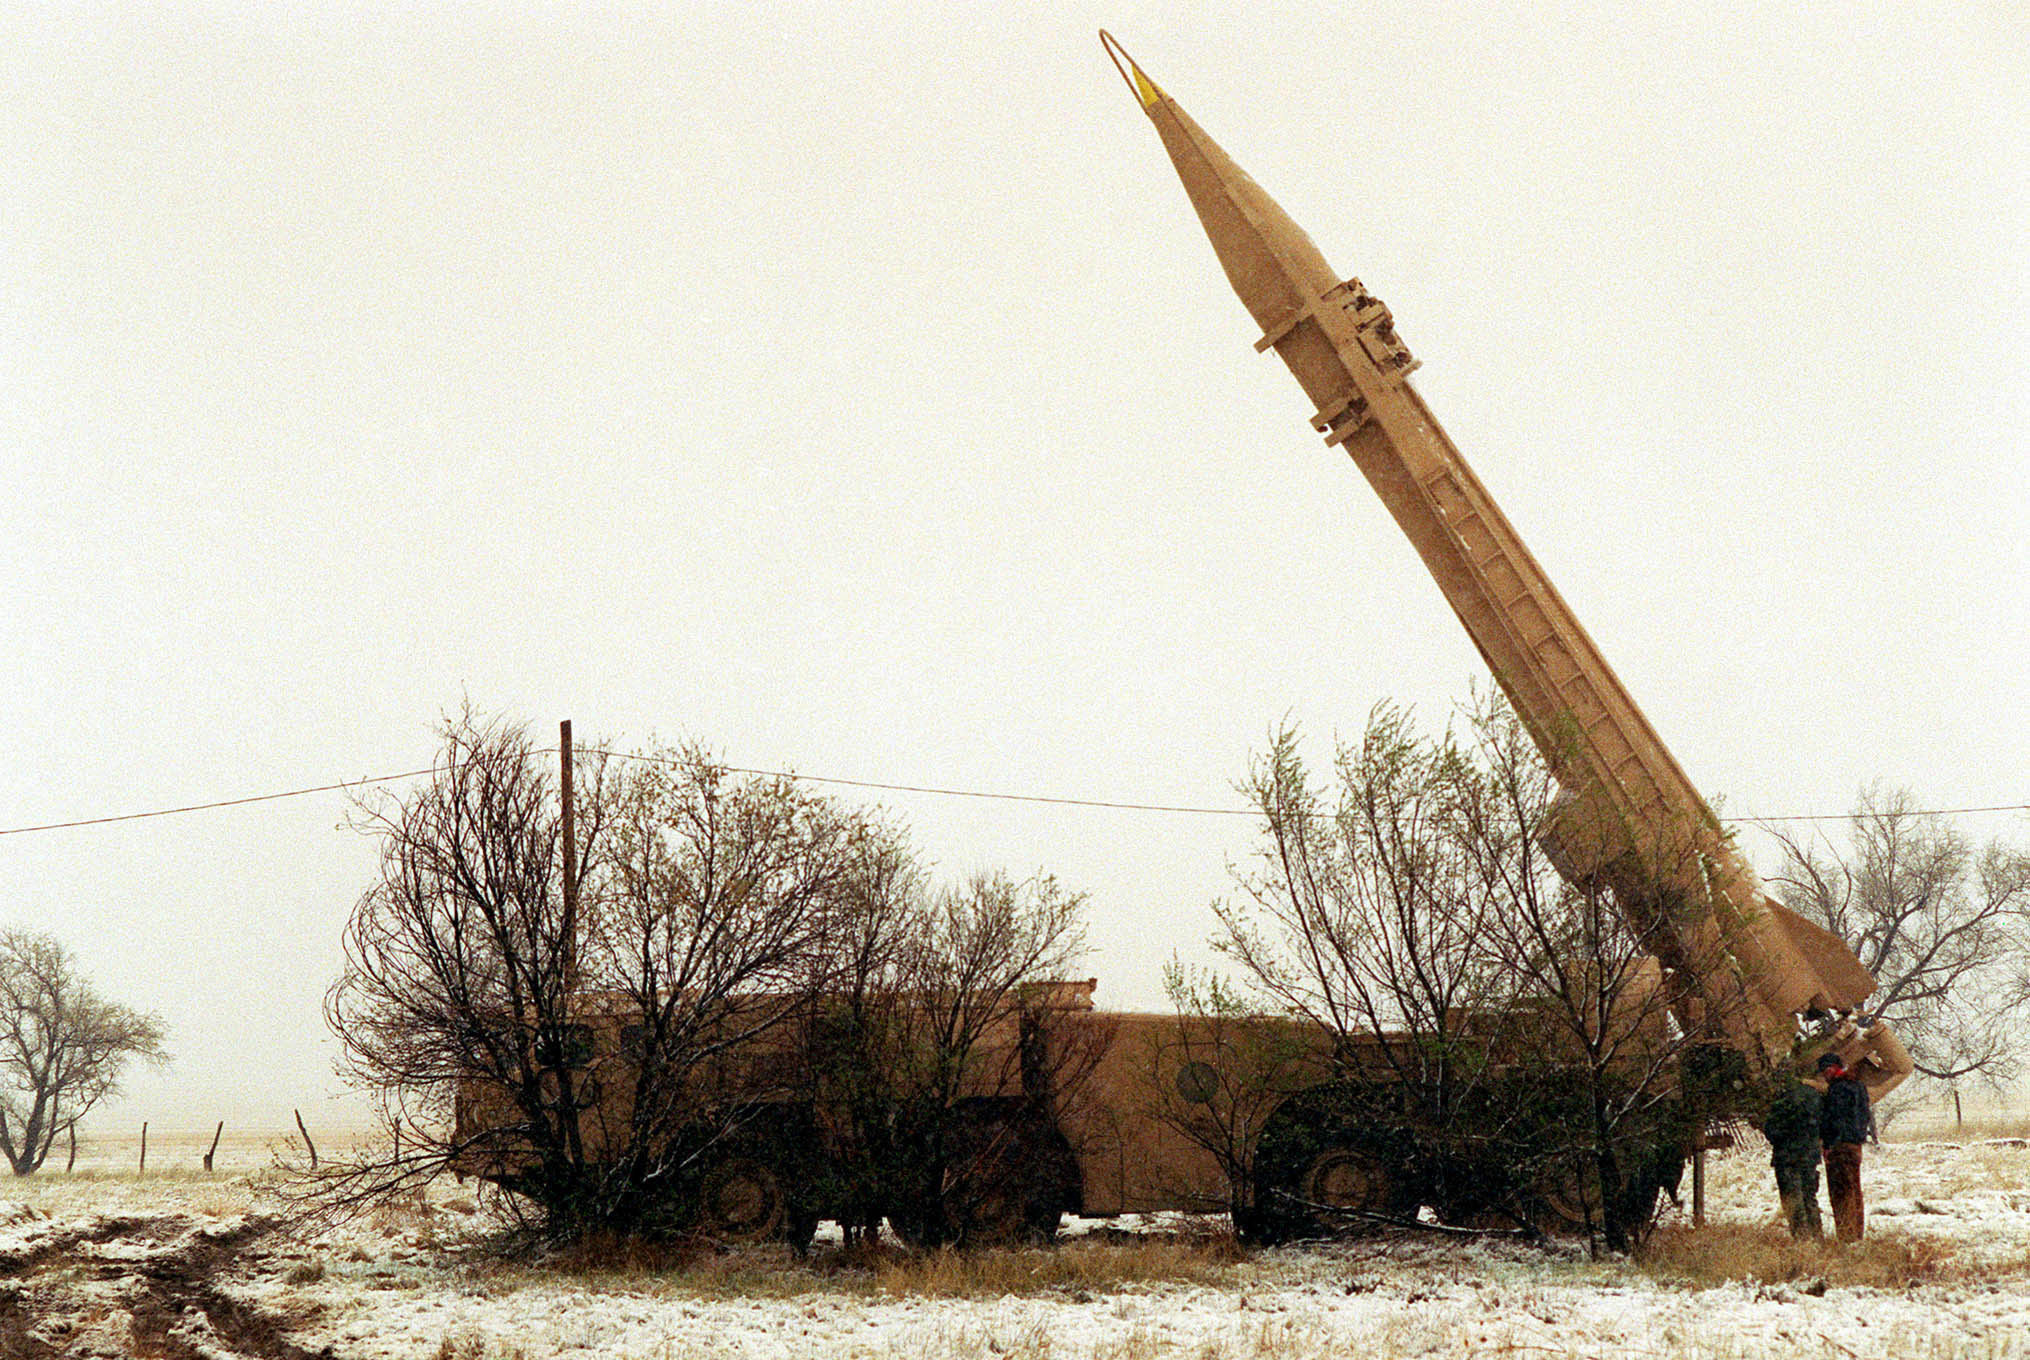 A Scud missile. File photo